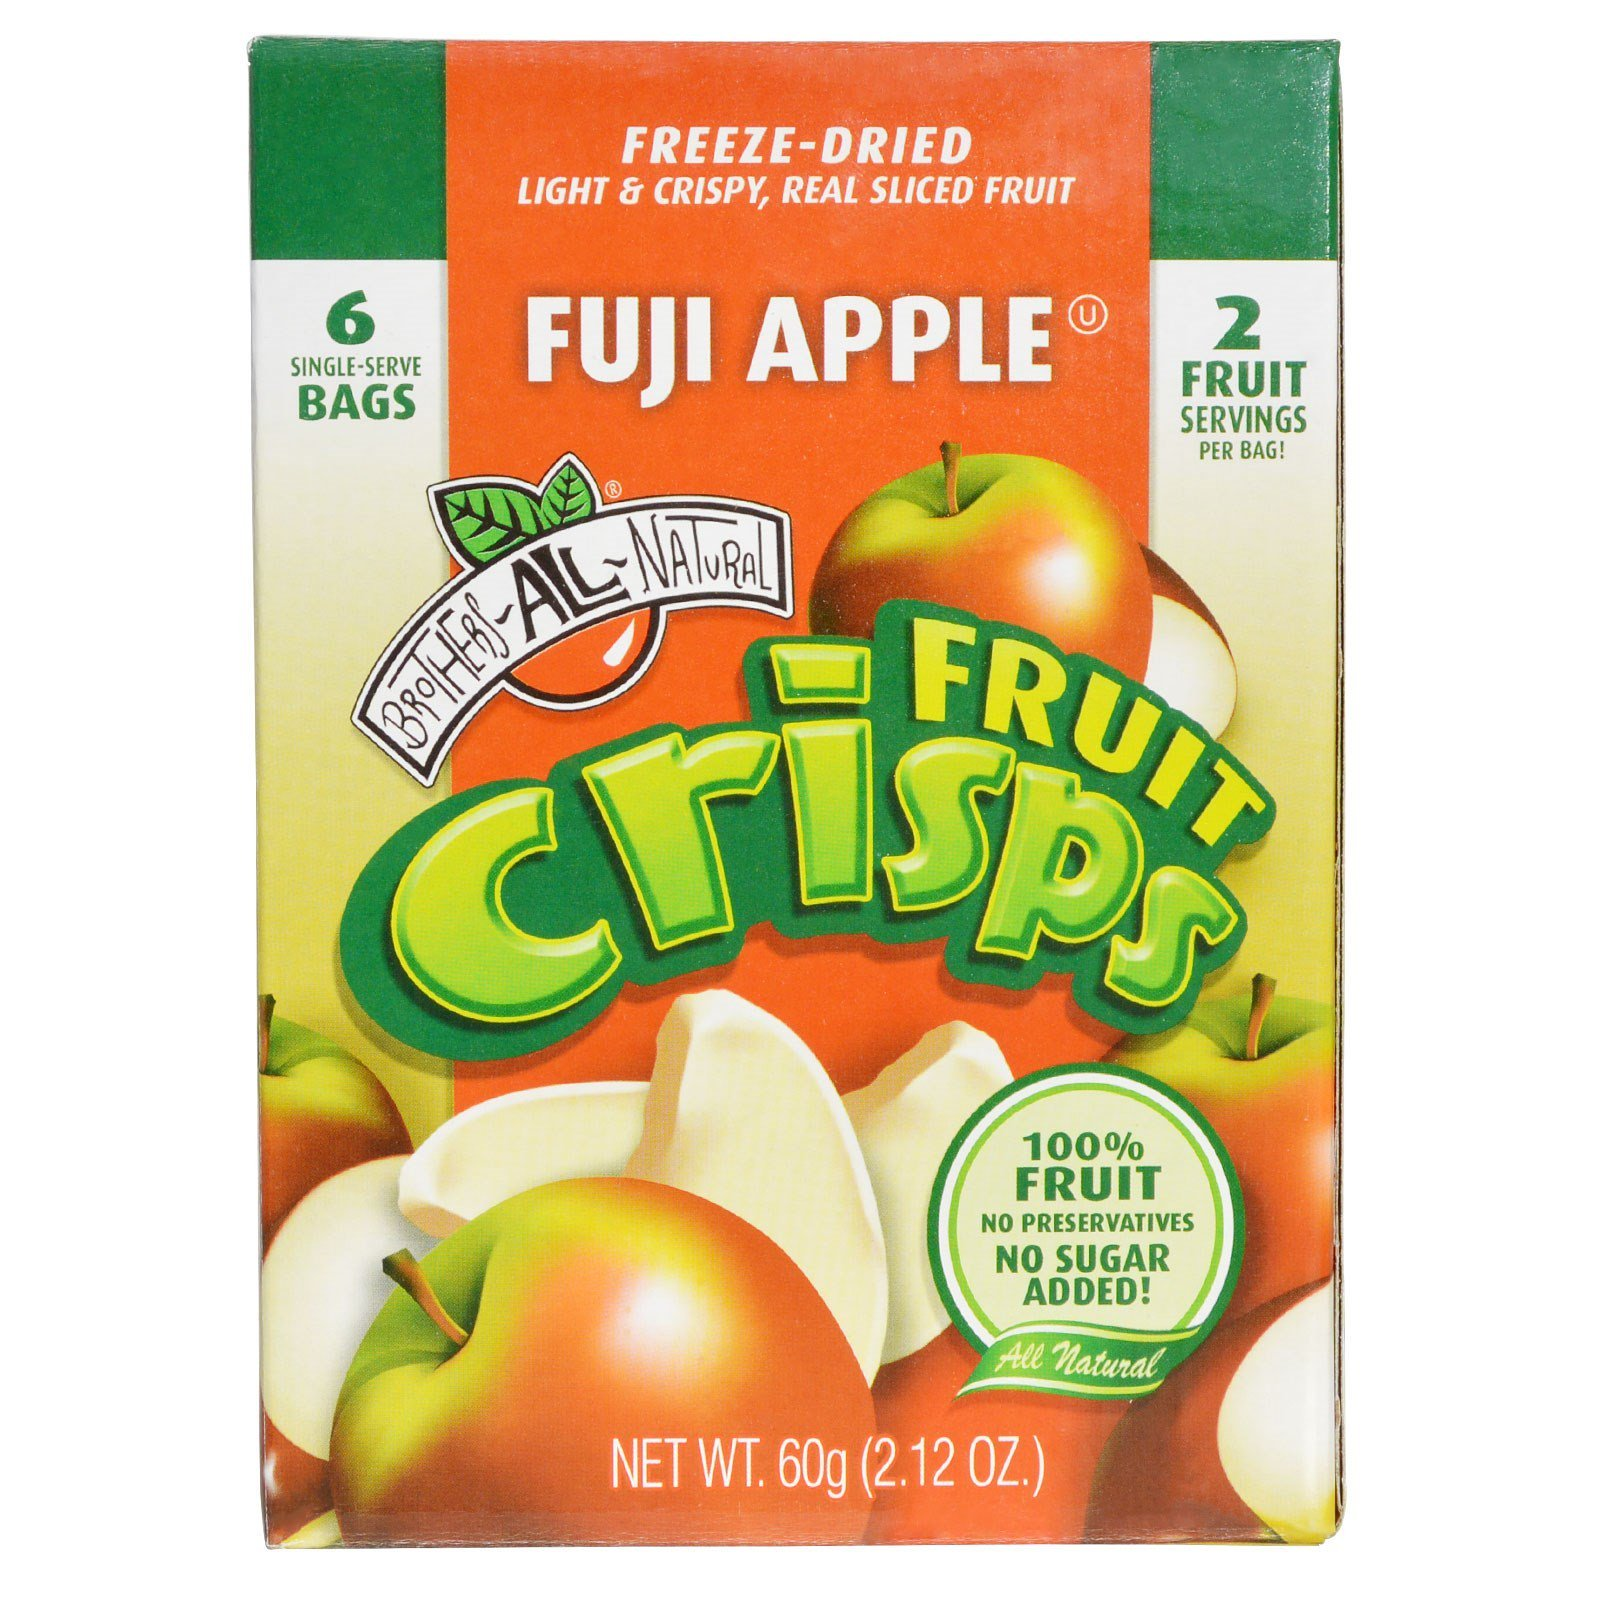 Brothers-All-Natural, Fuji Apple, 6-pack (.35 oz each)